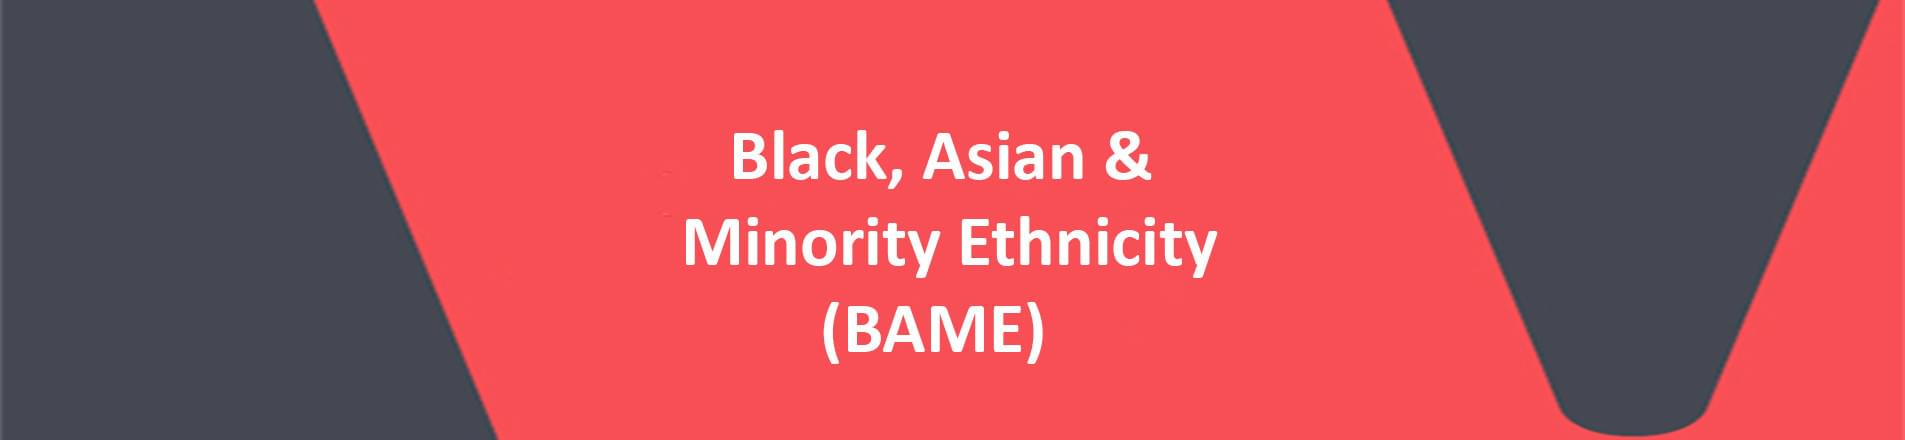 Red banner with white text reading black, asian, minority, ethnicity (bame)